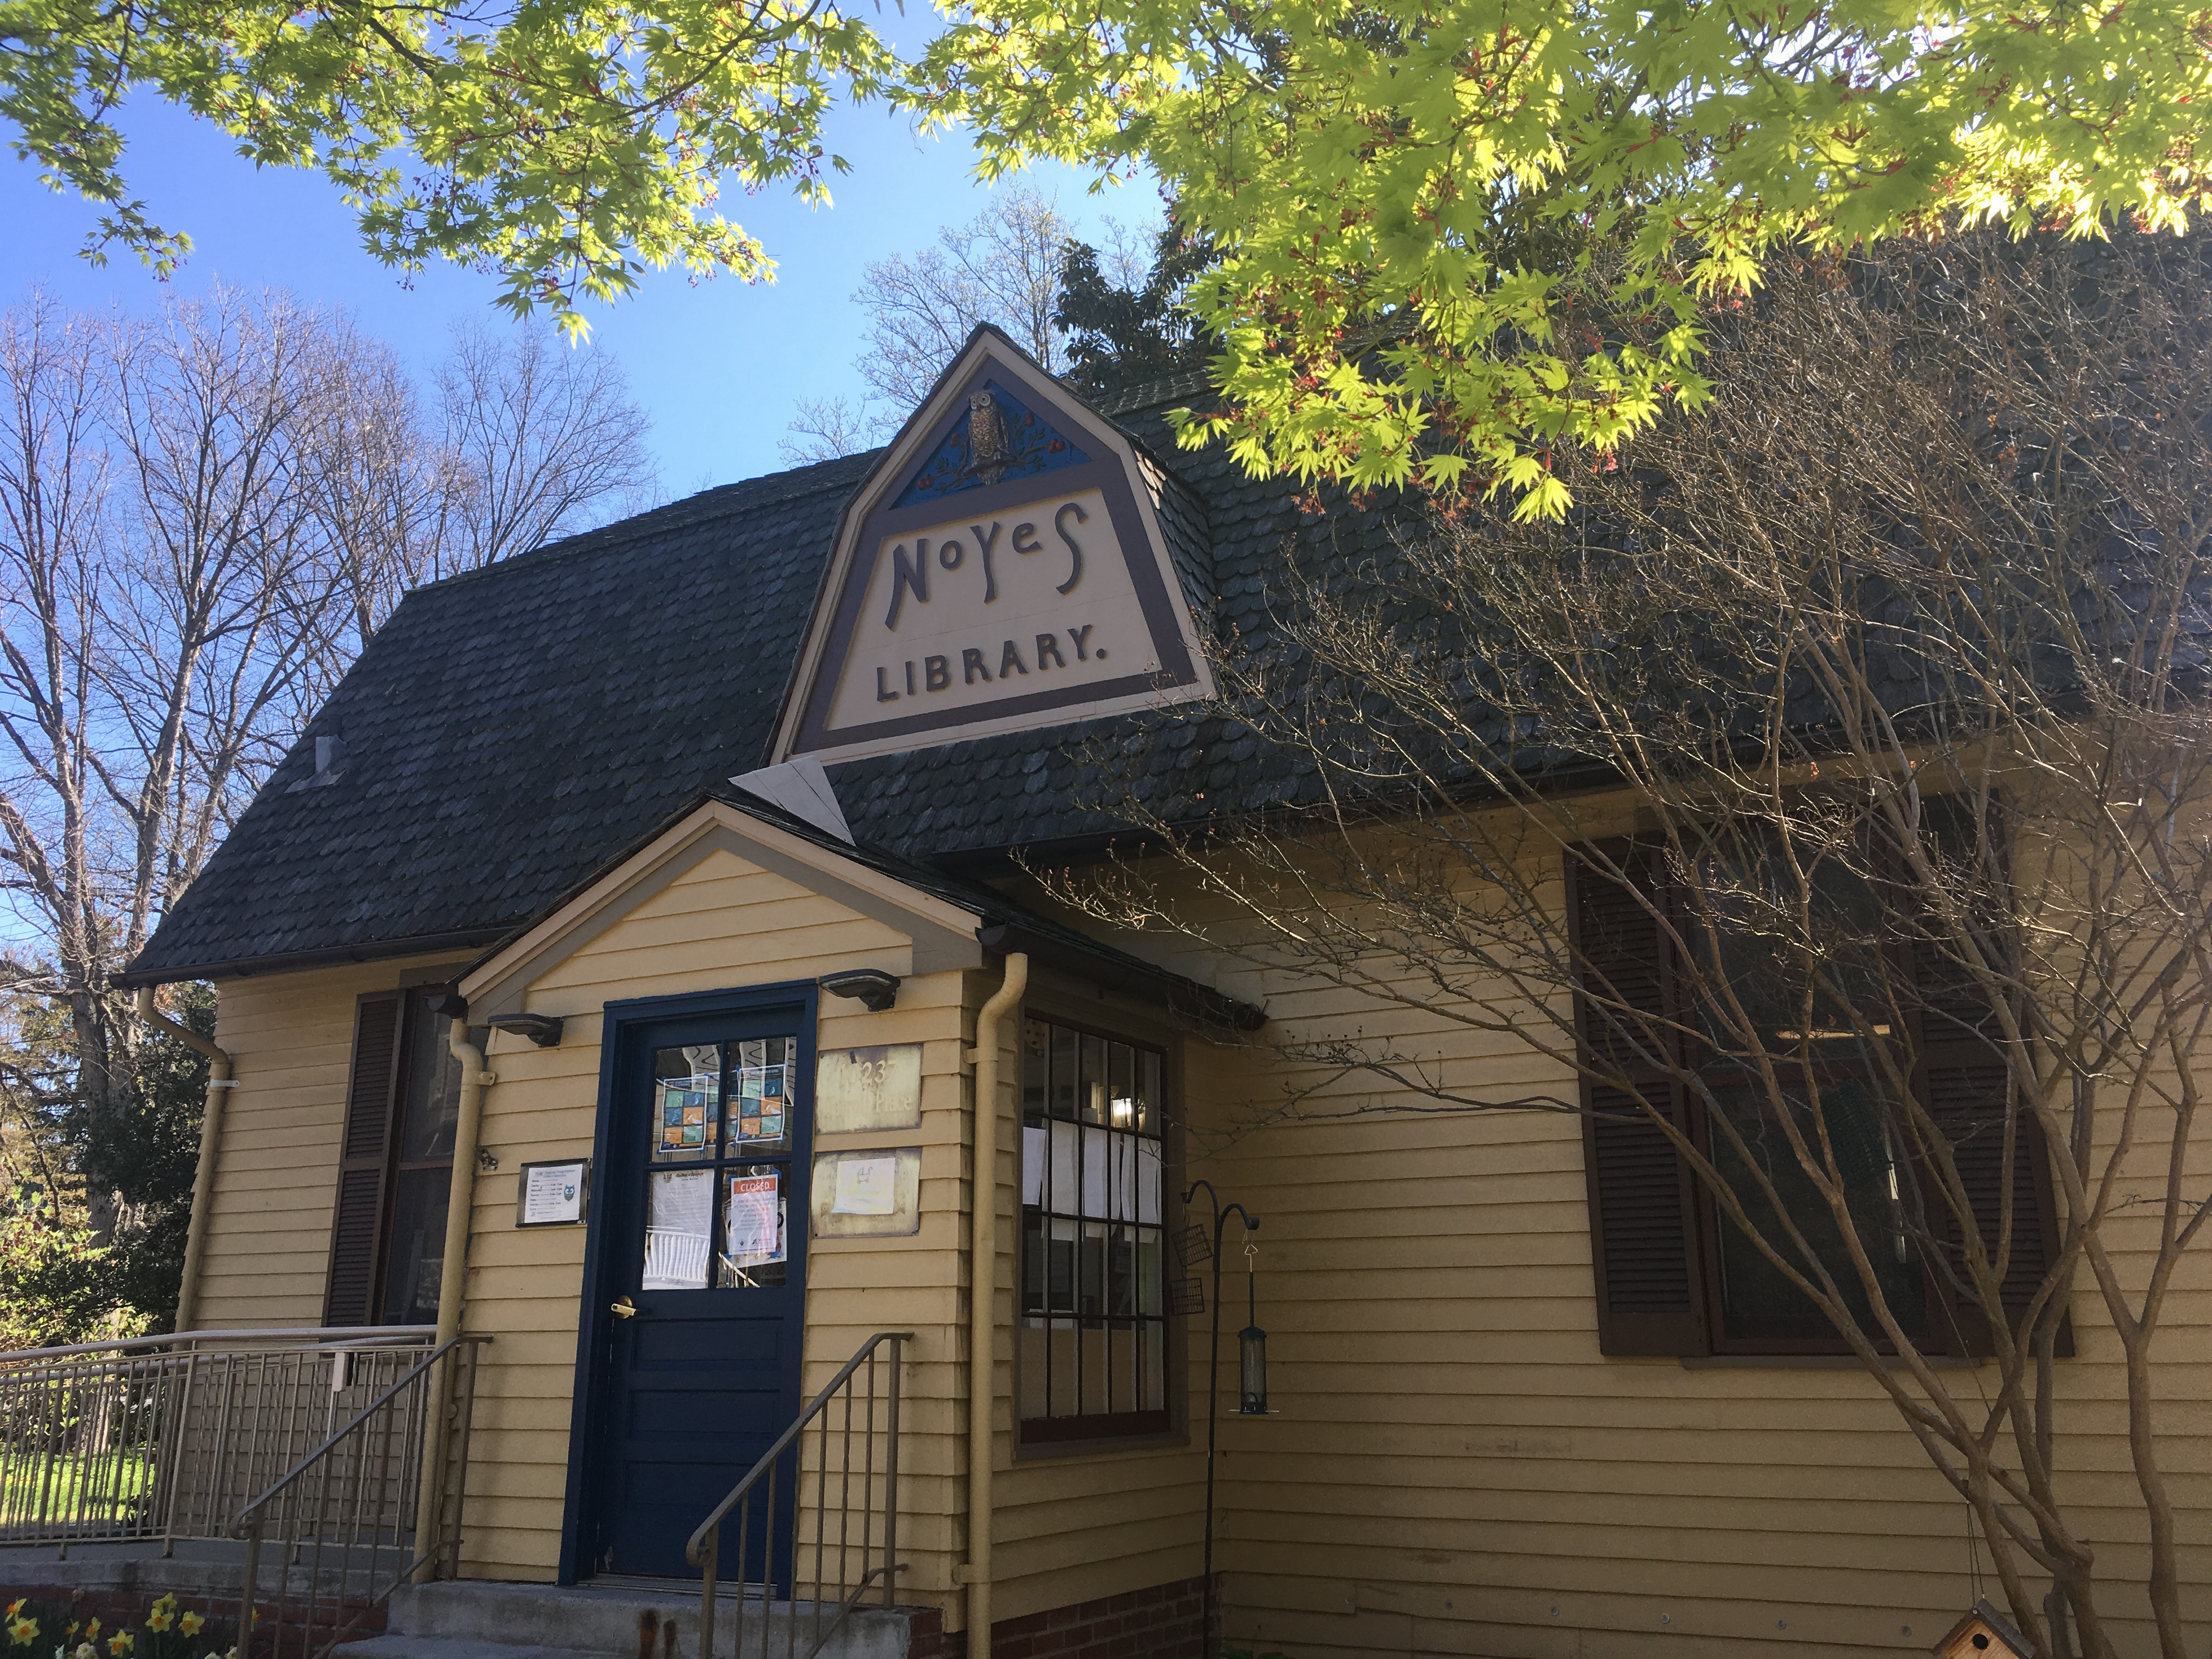 Noyes now serves as a dedicated children's library.